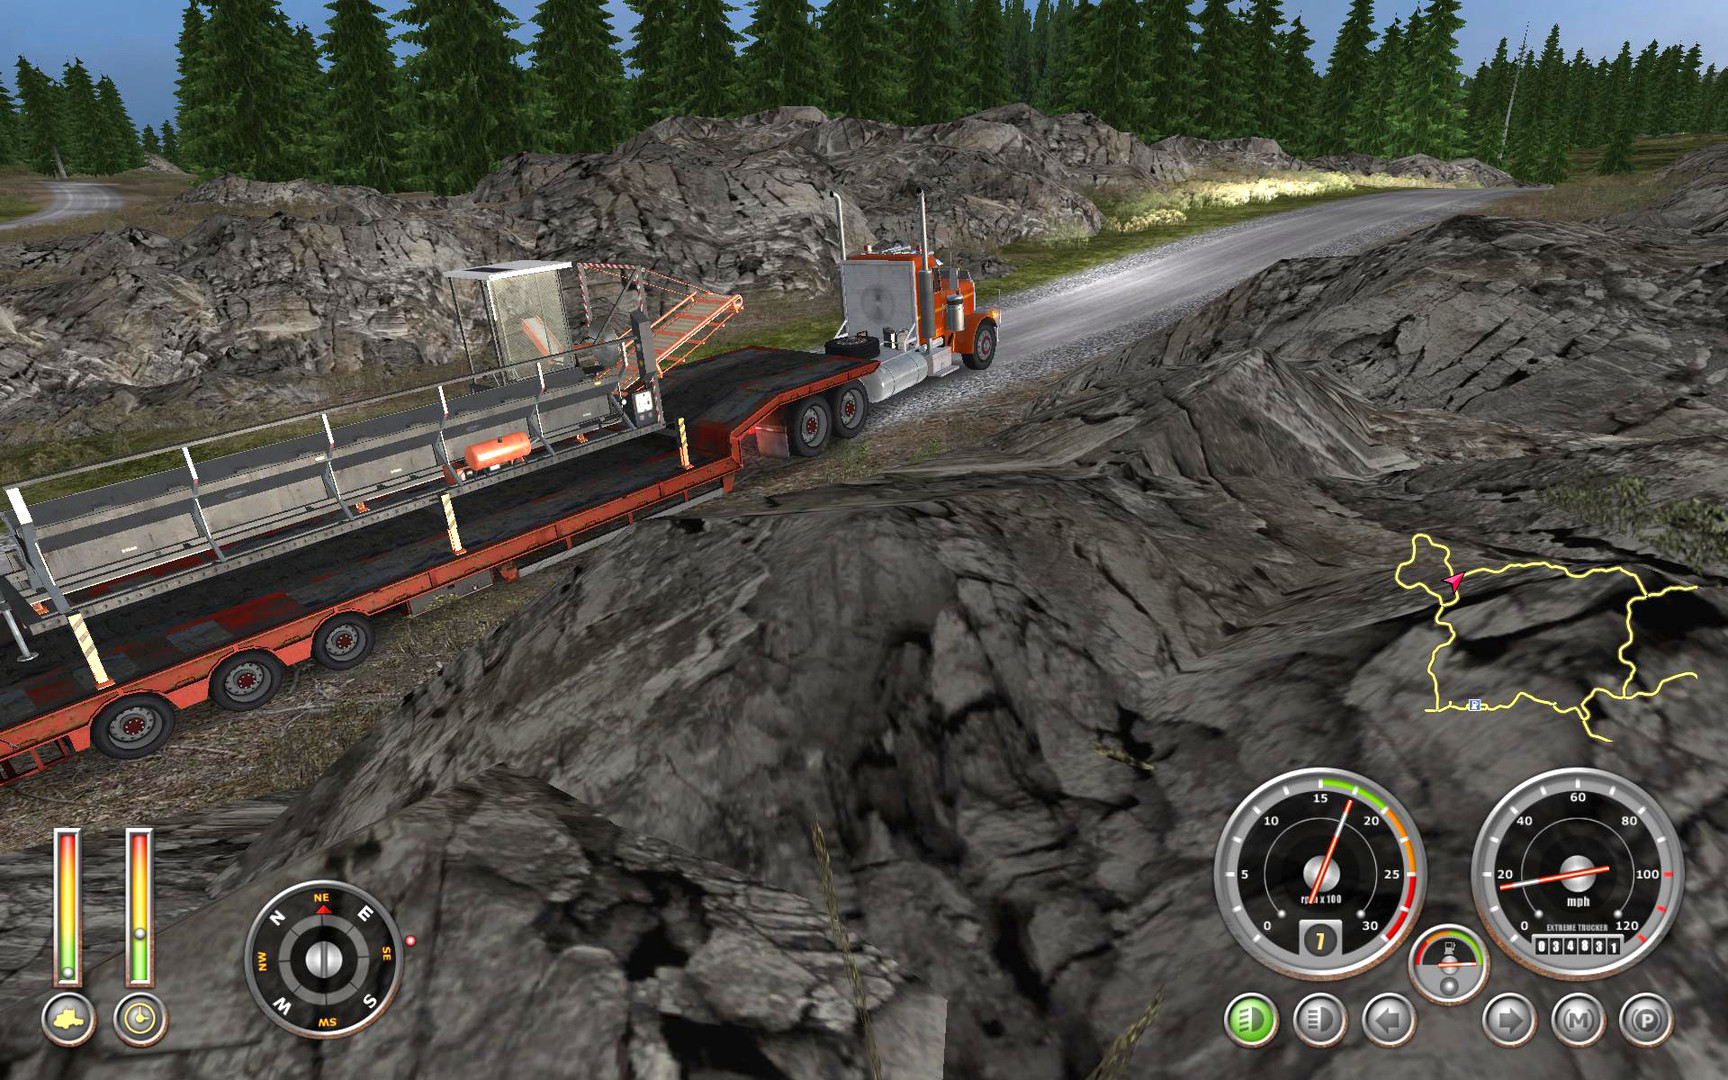 Trucker 2 pc game free download impacts of gambling